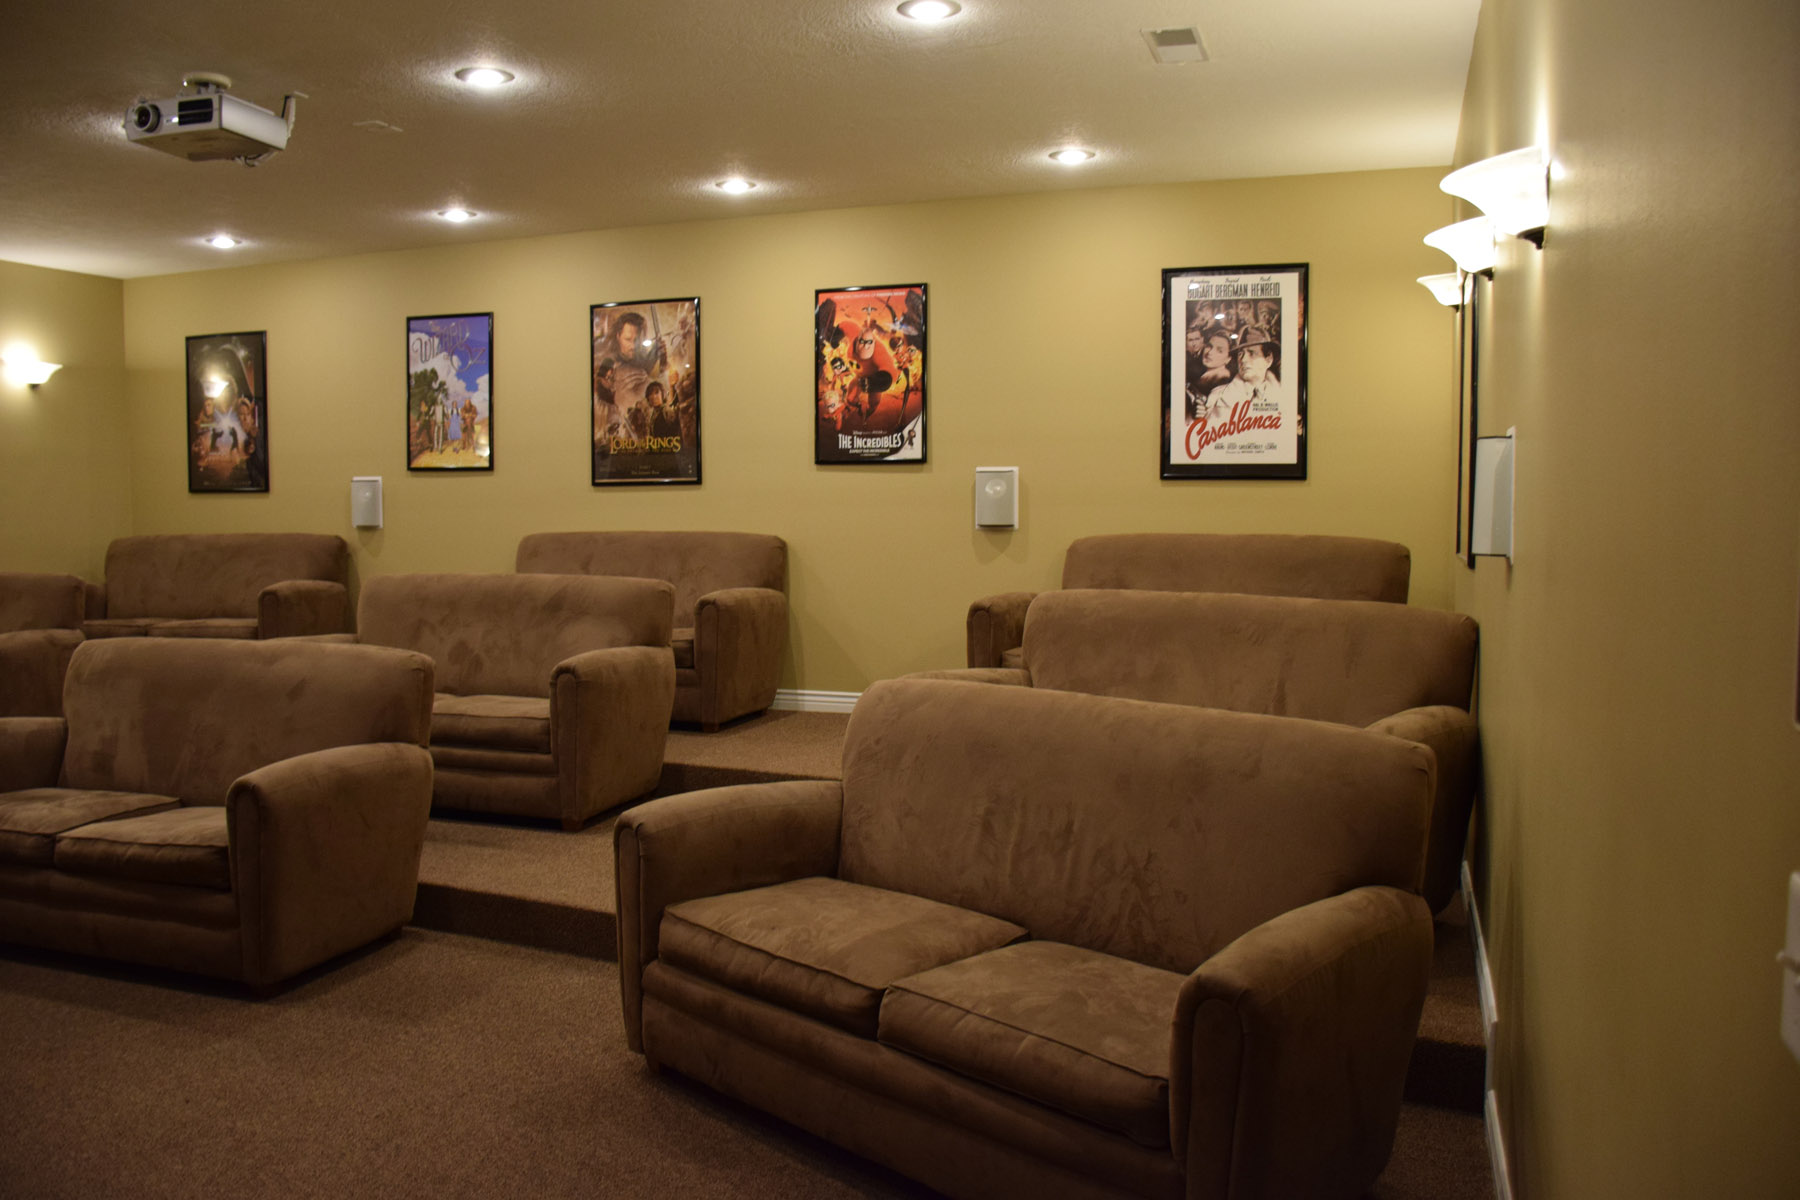 ... Media Room The Village Apartments 3 Seater Sofa Covers Ikea Velcromag  Church Stadium Seating ...